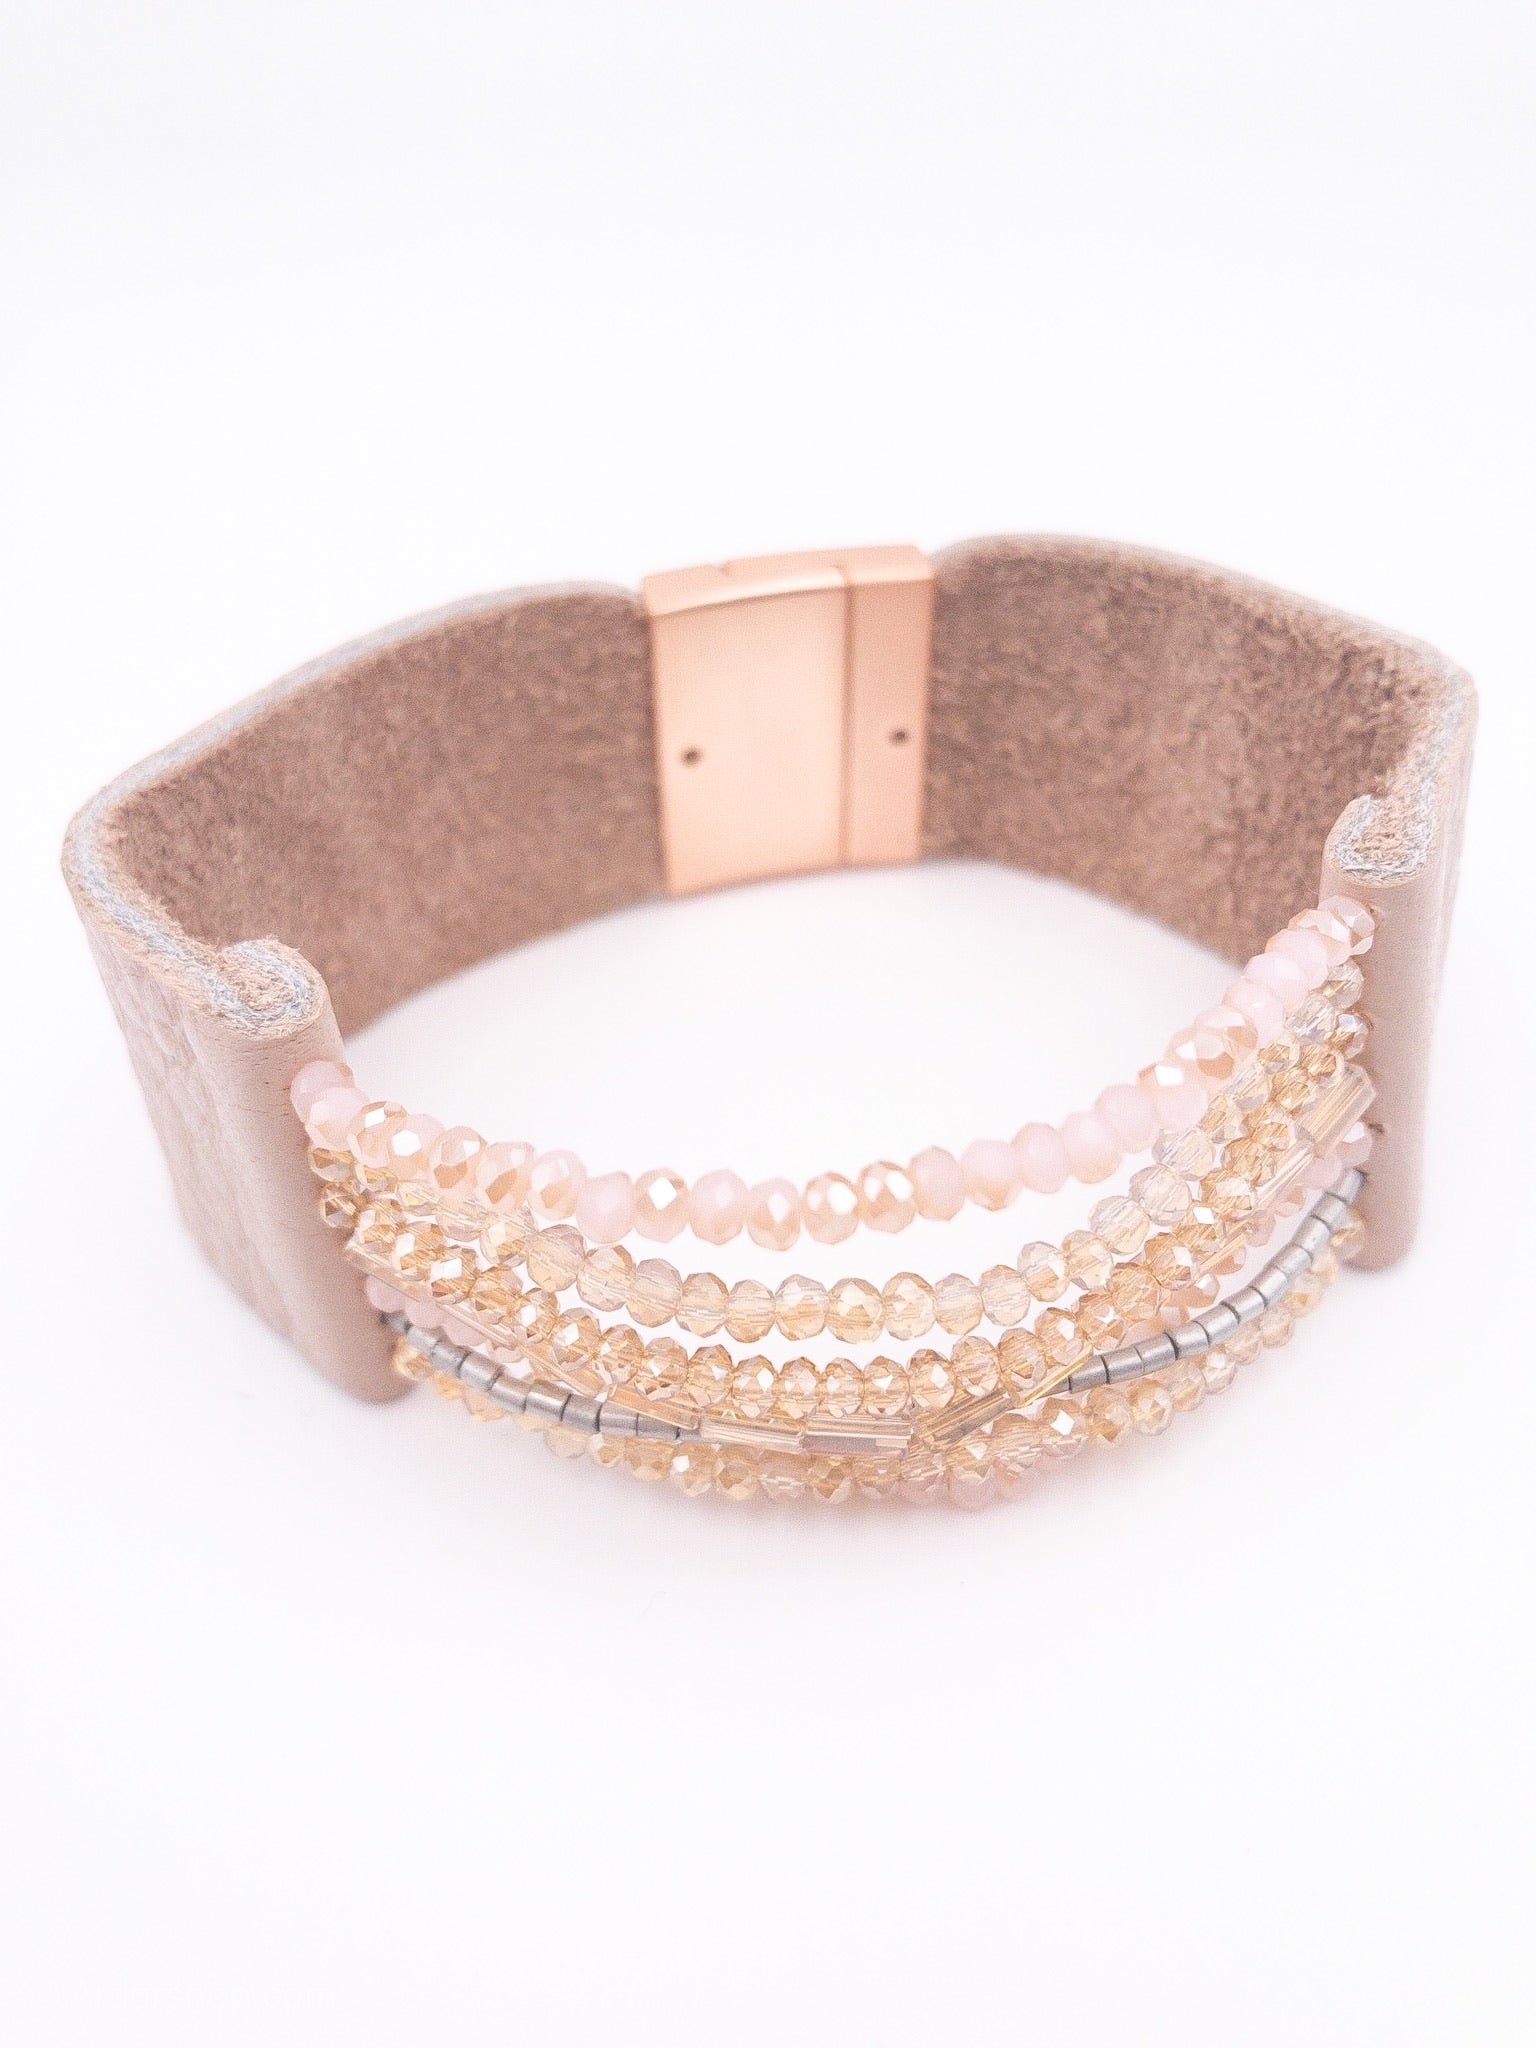 Rose gold blush beaded leather bracelet